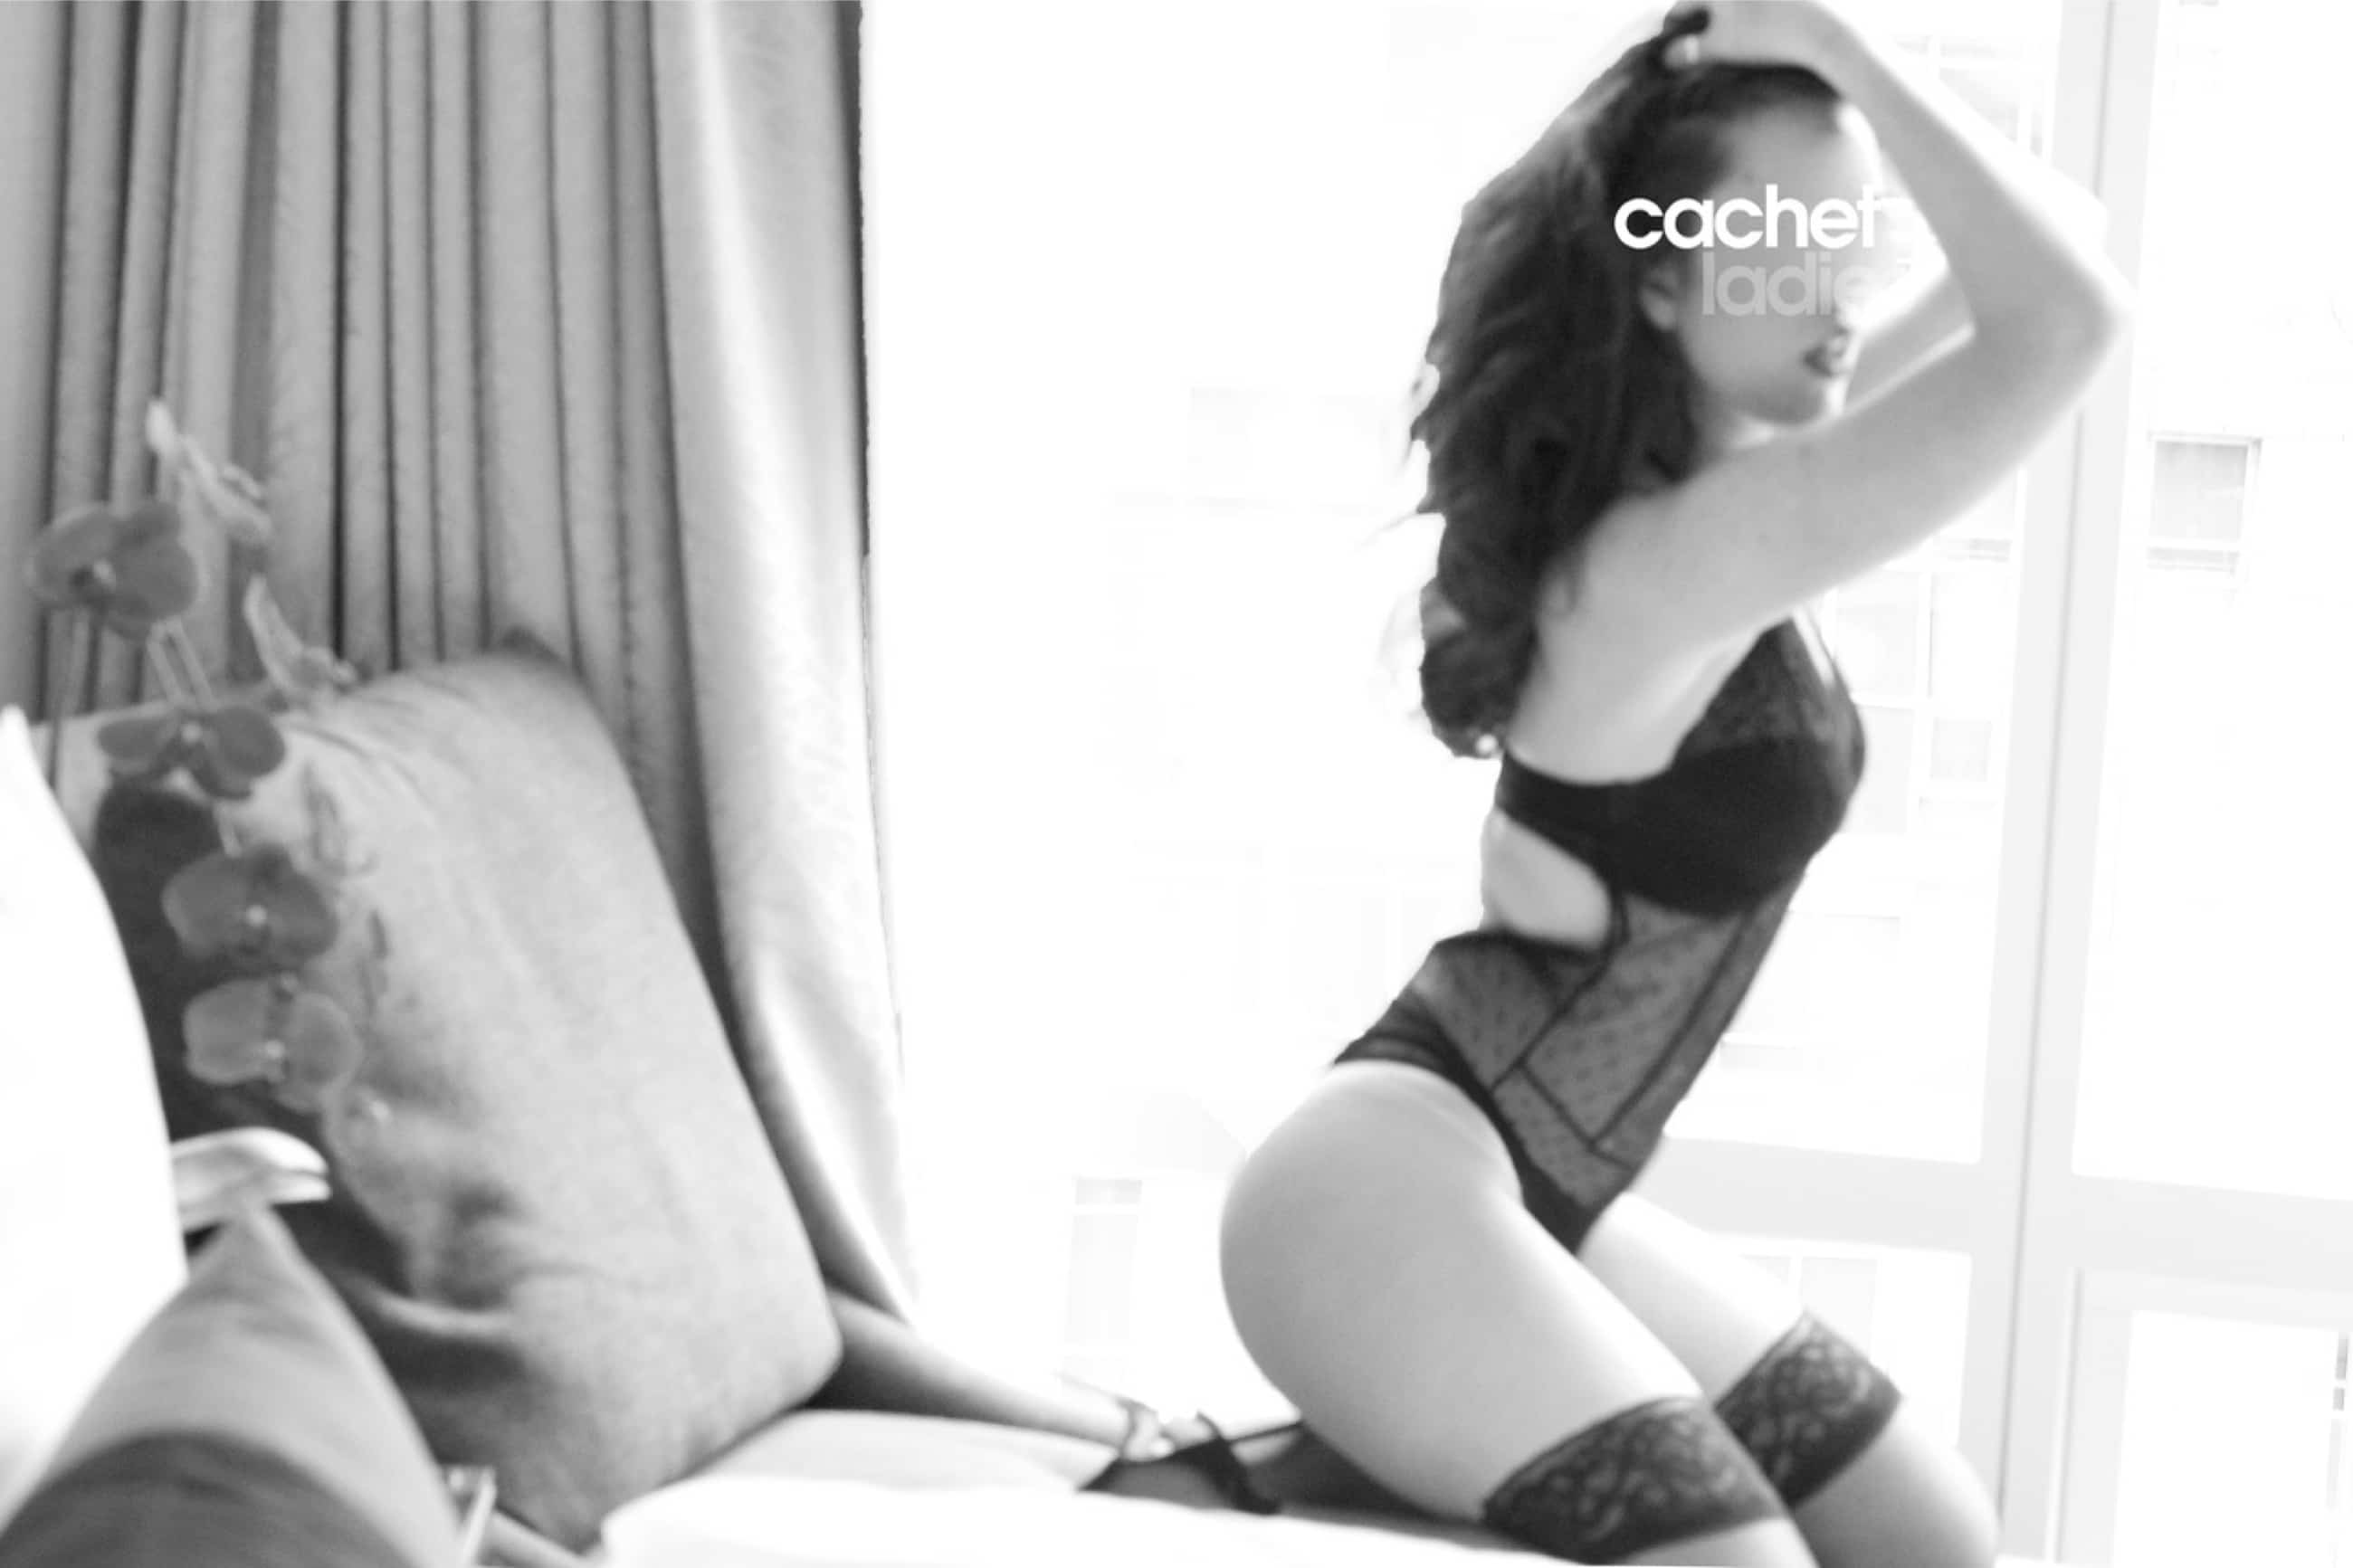 Charlie a courtesan escort by Cachet Ladies